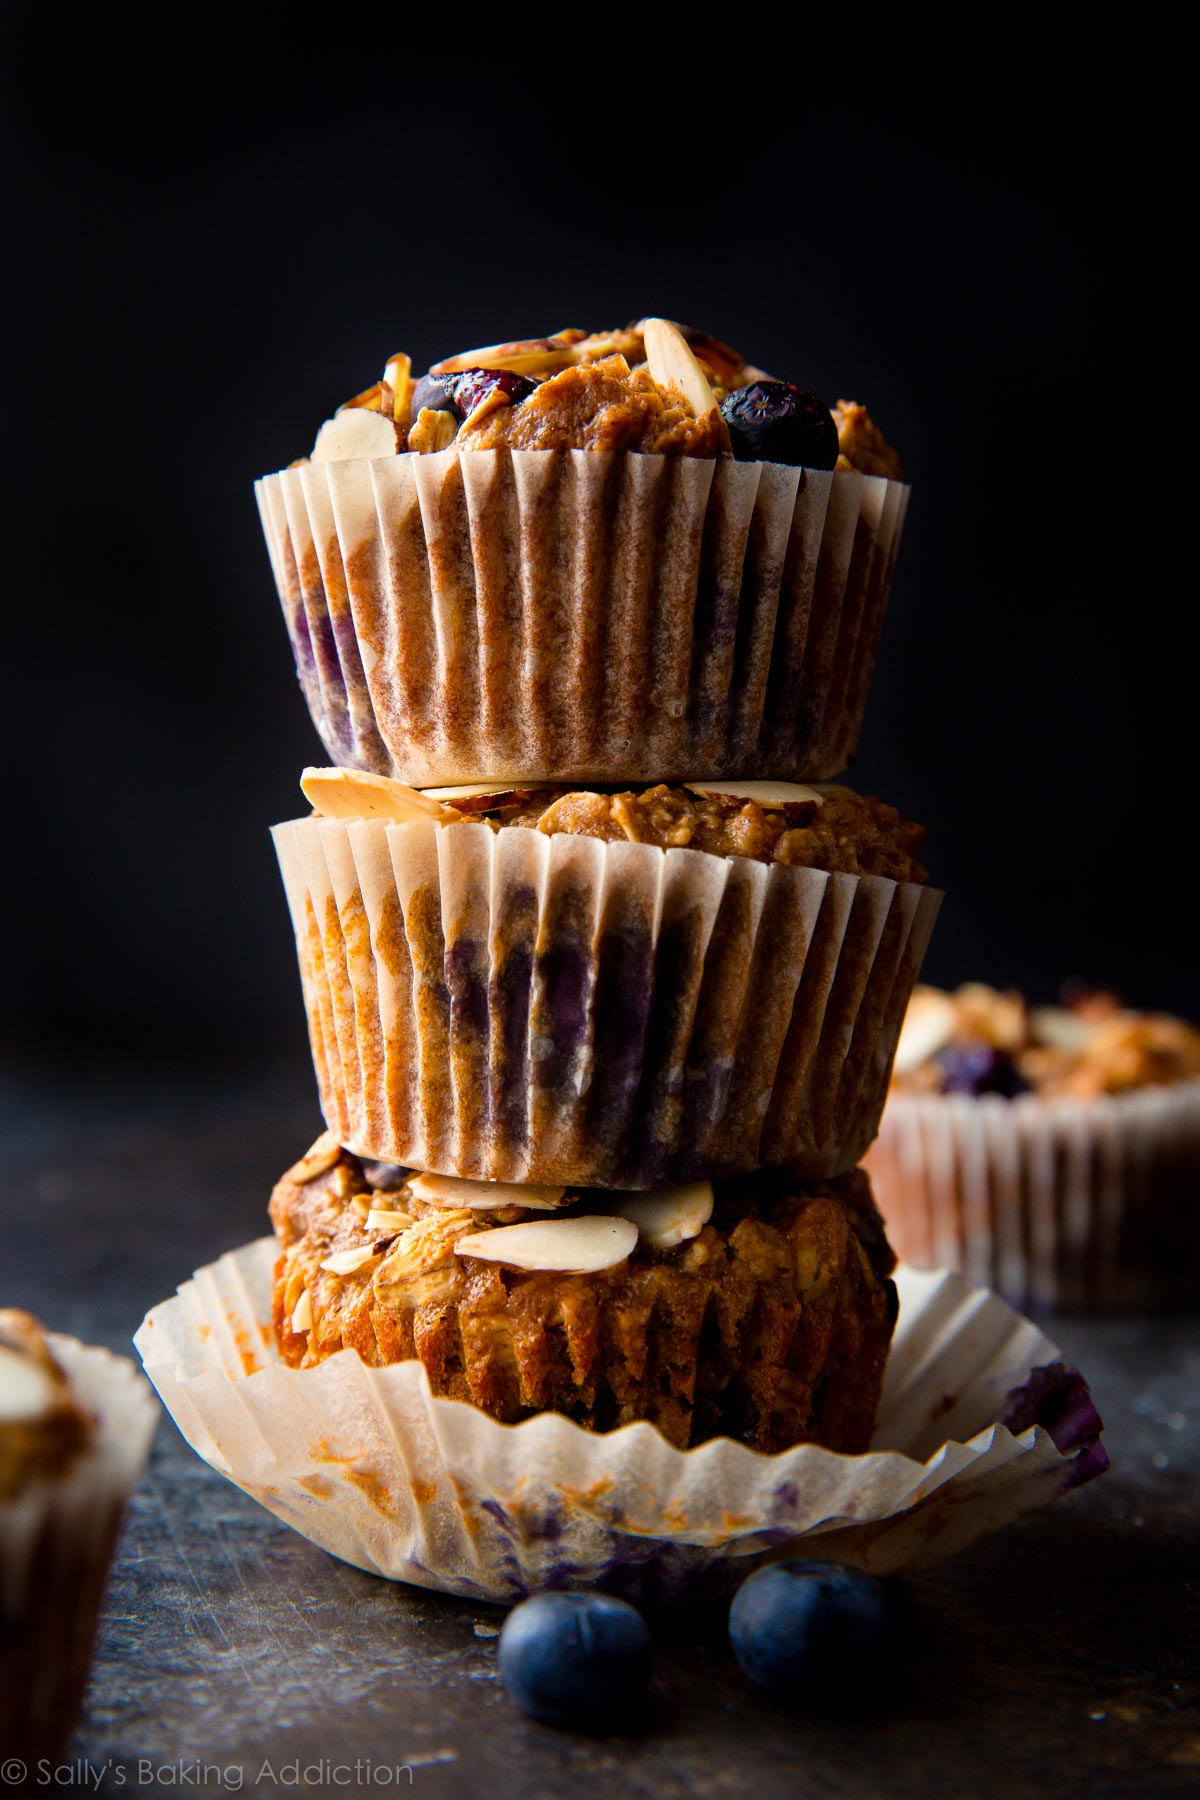 These gluten free blueberry almond muffins are wholesome and satisfying and are made with almond butter, Greek yogurt, oats, and almond flour! Recipe on sallysbakingaddiction.com